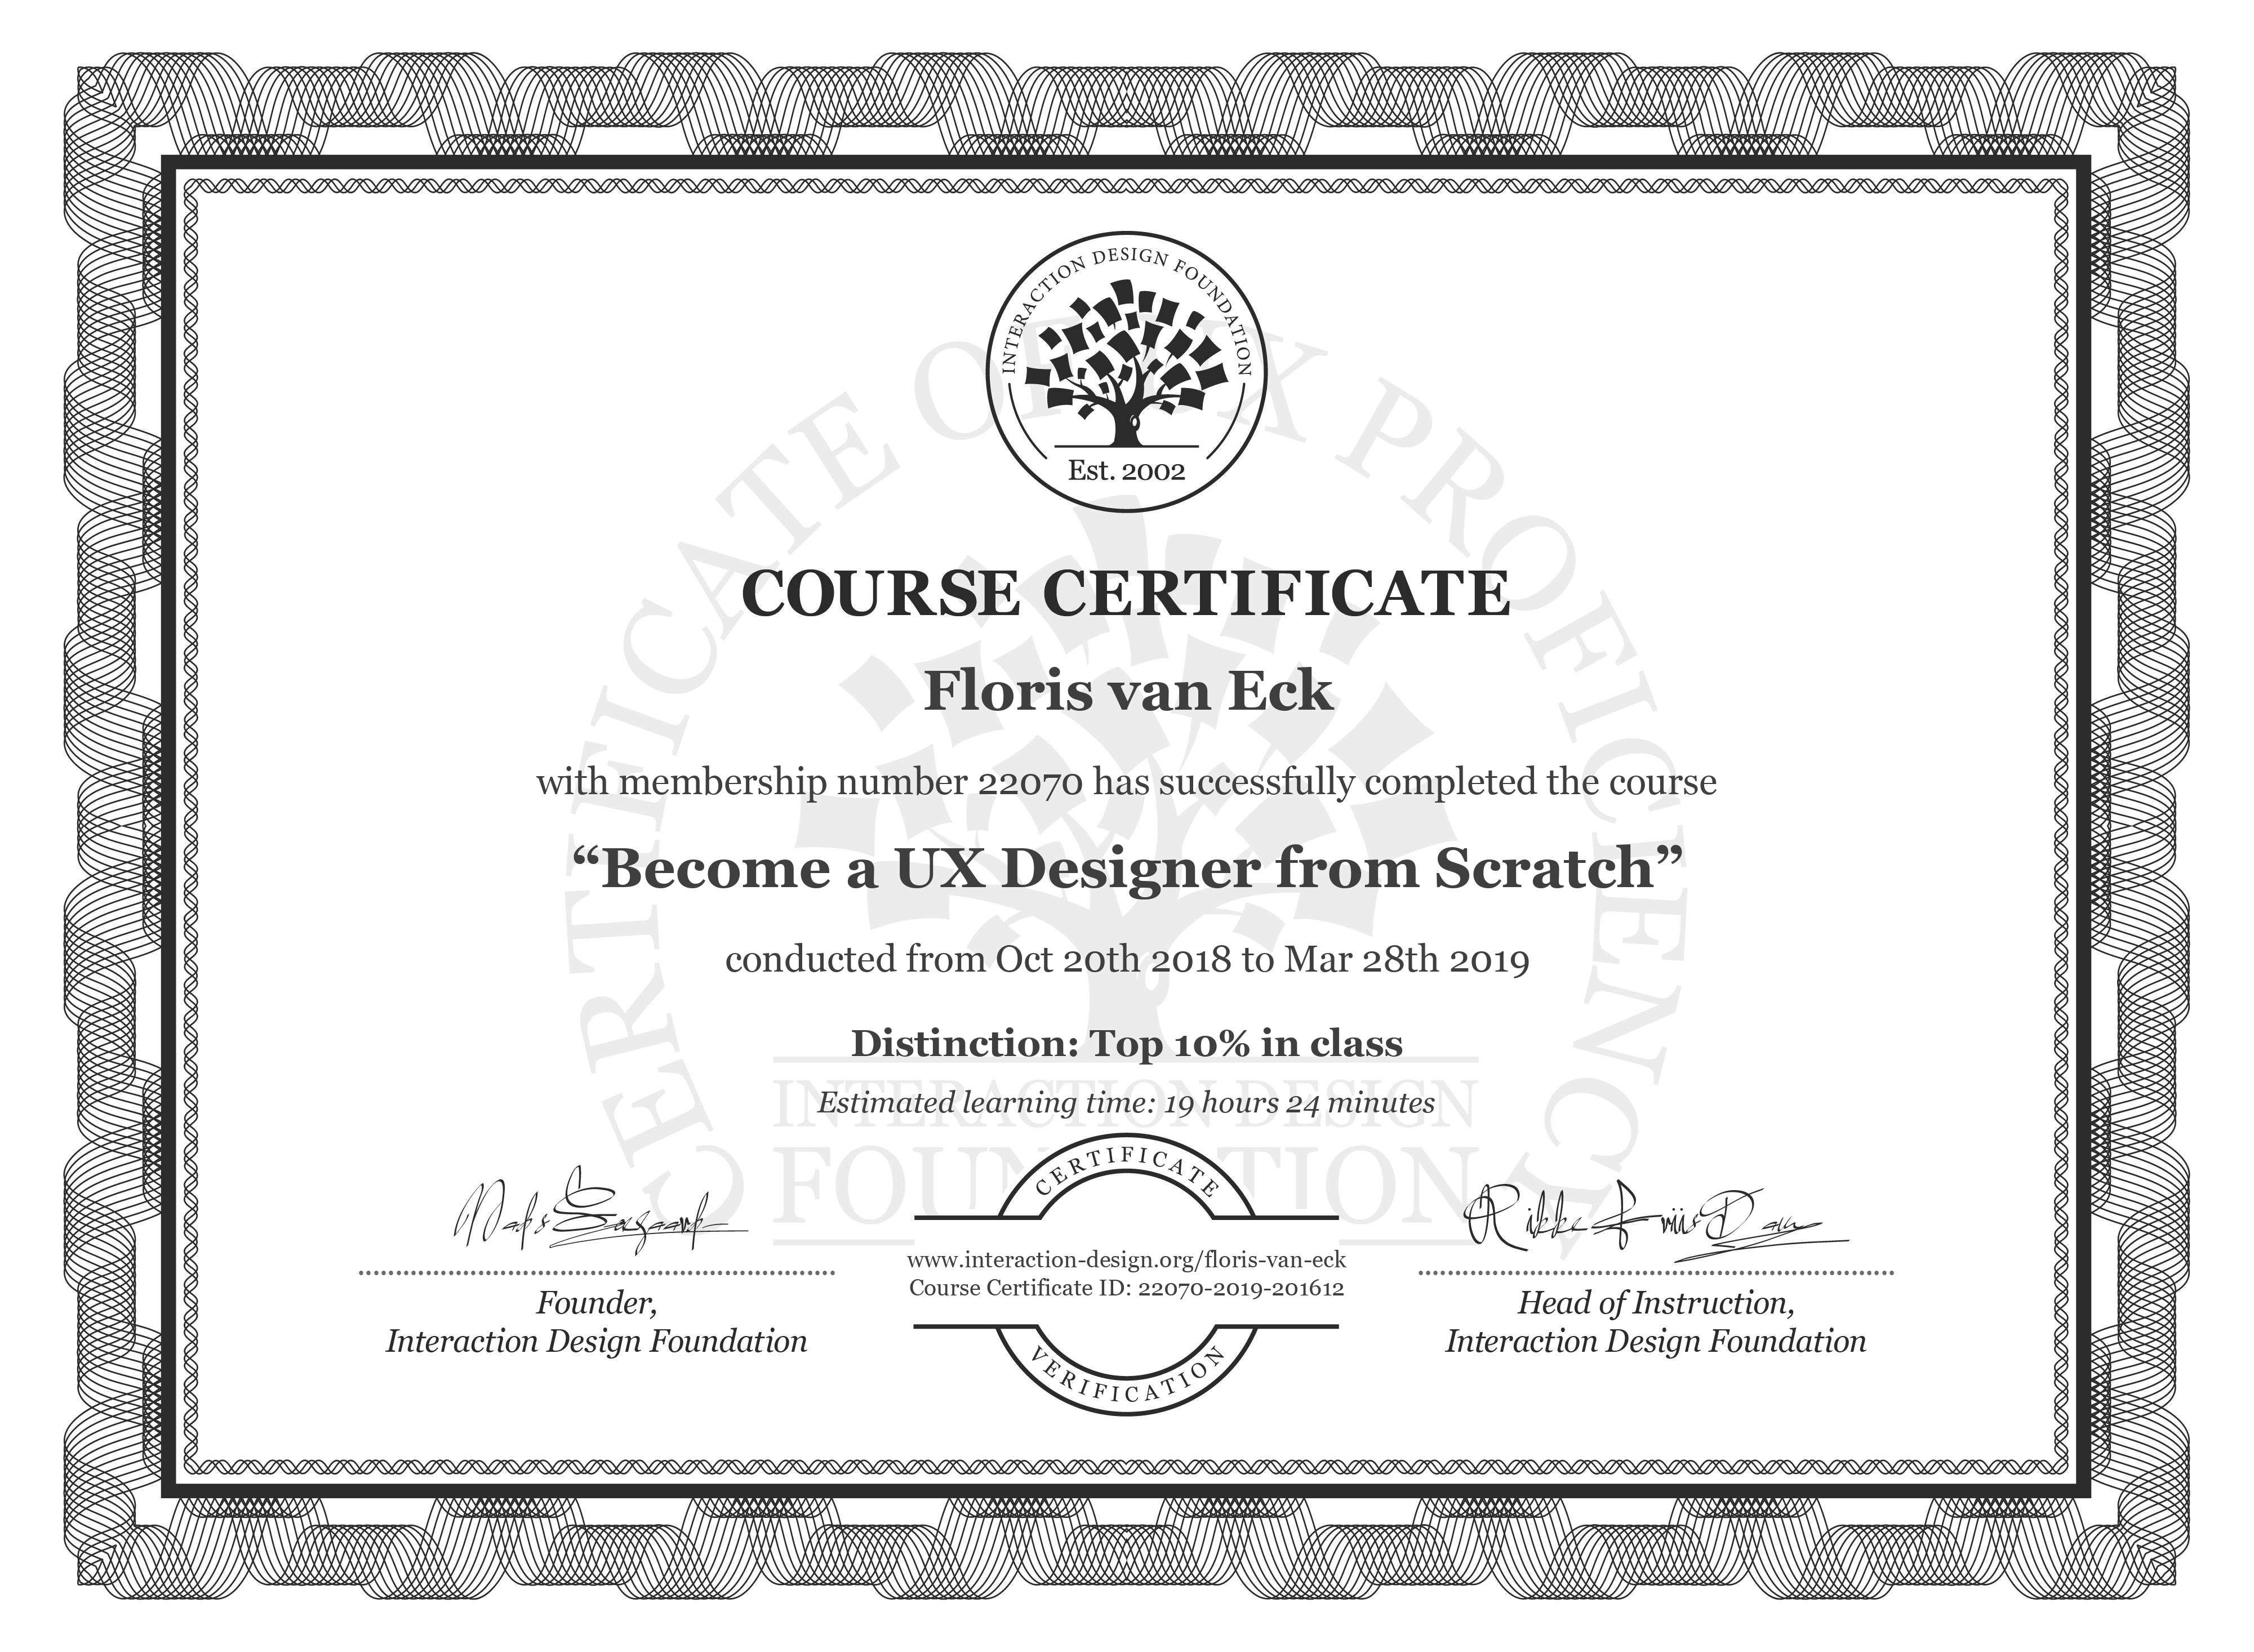 Floris van Eck's Course Certificate: User Experience: The Beginner's Guide